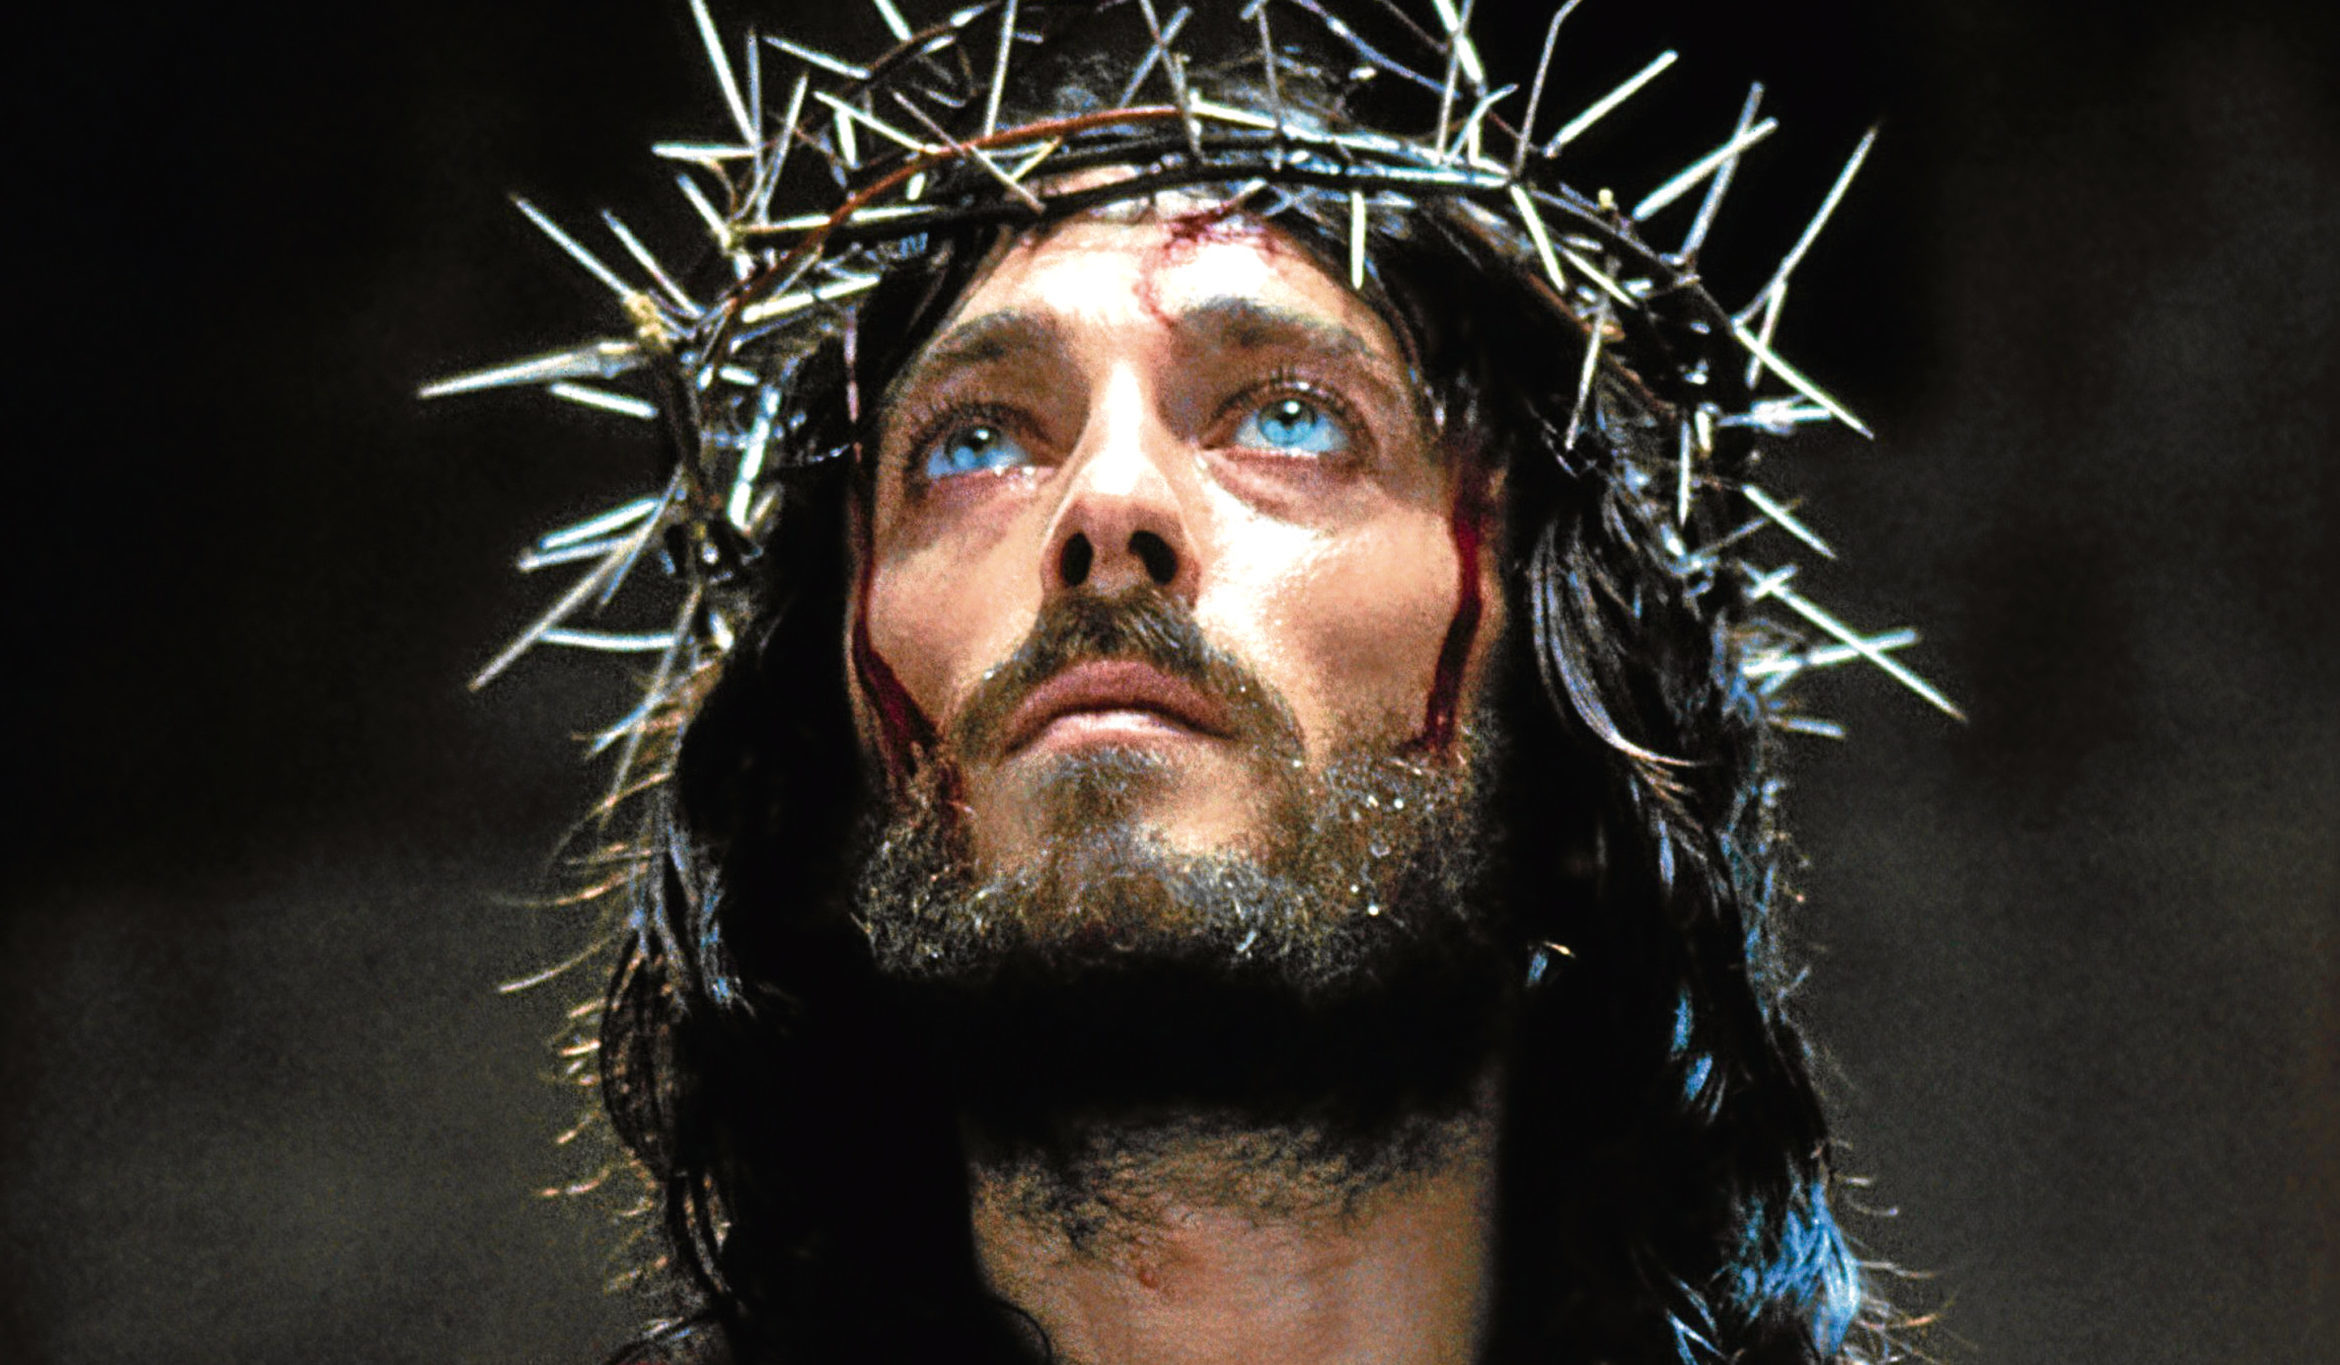 Robert Powell starring in Jesus of Nazareth, 1977 (Allstar)